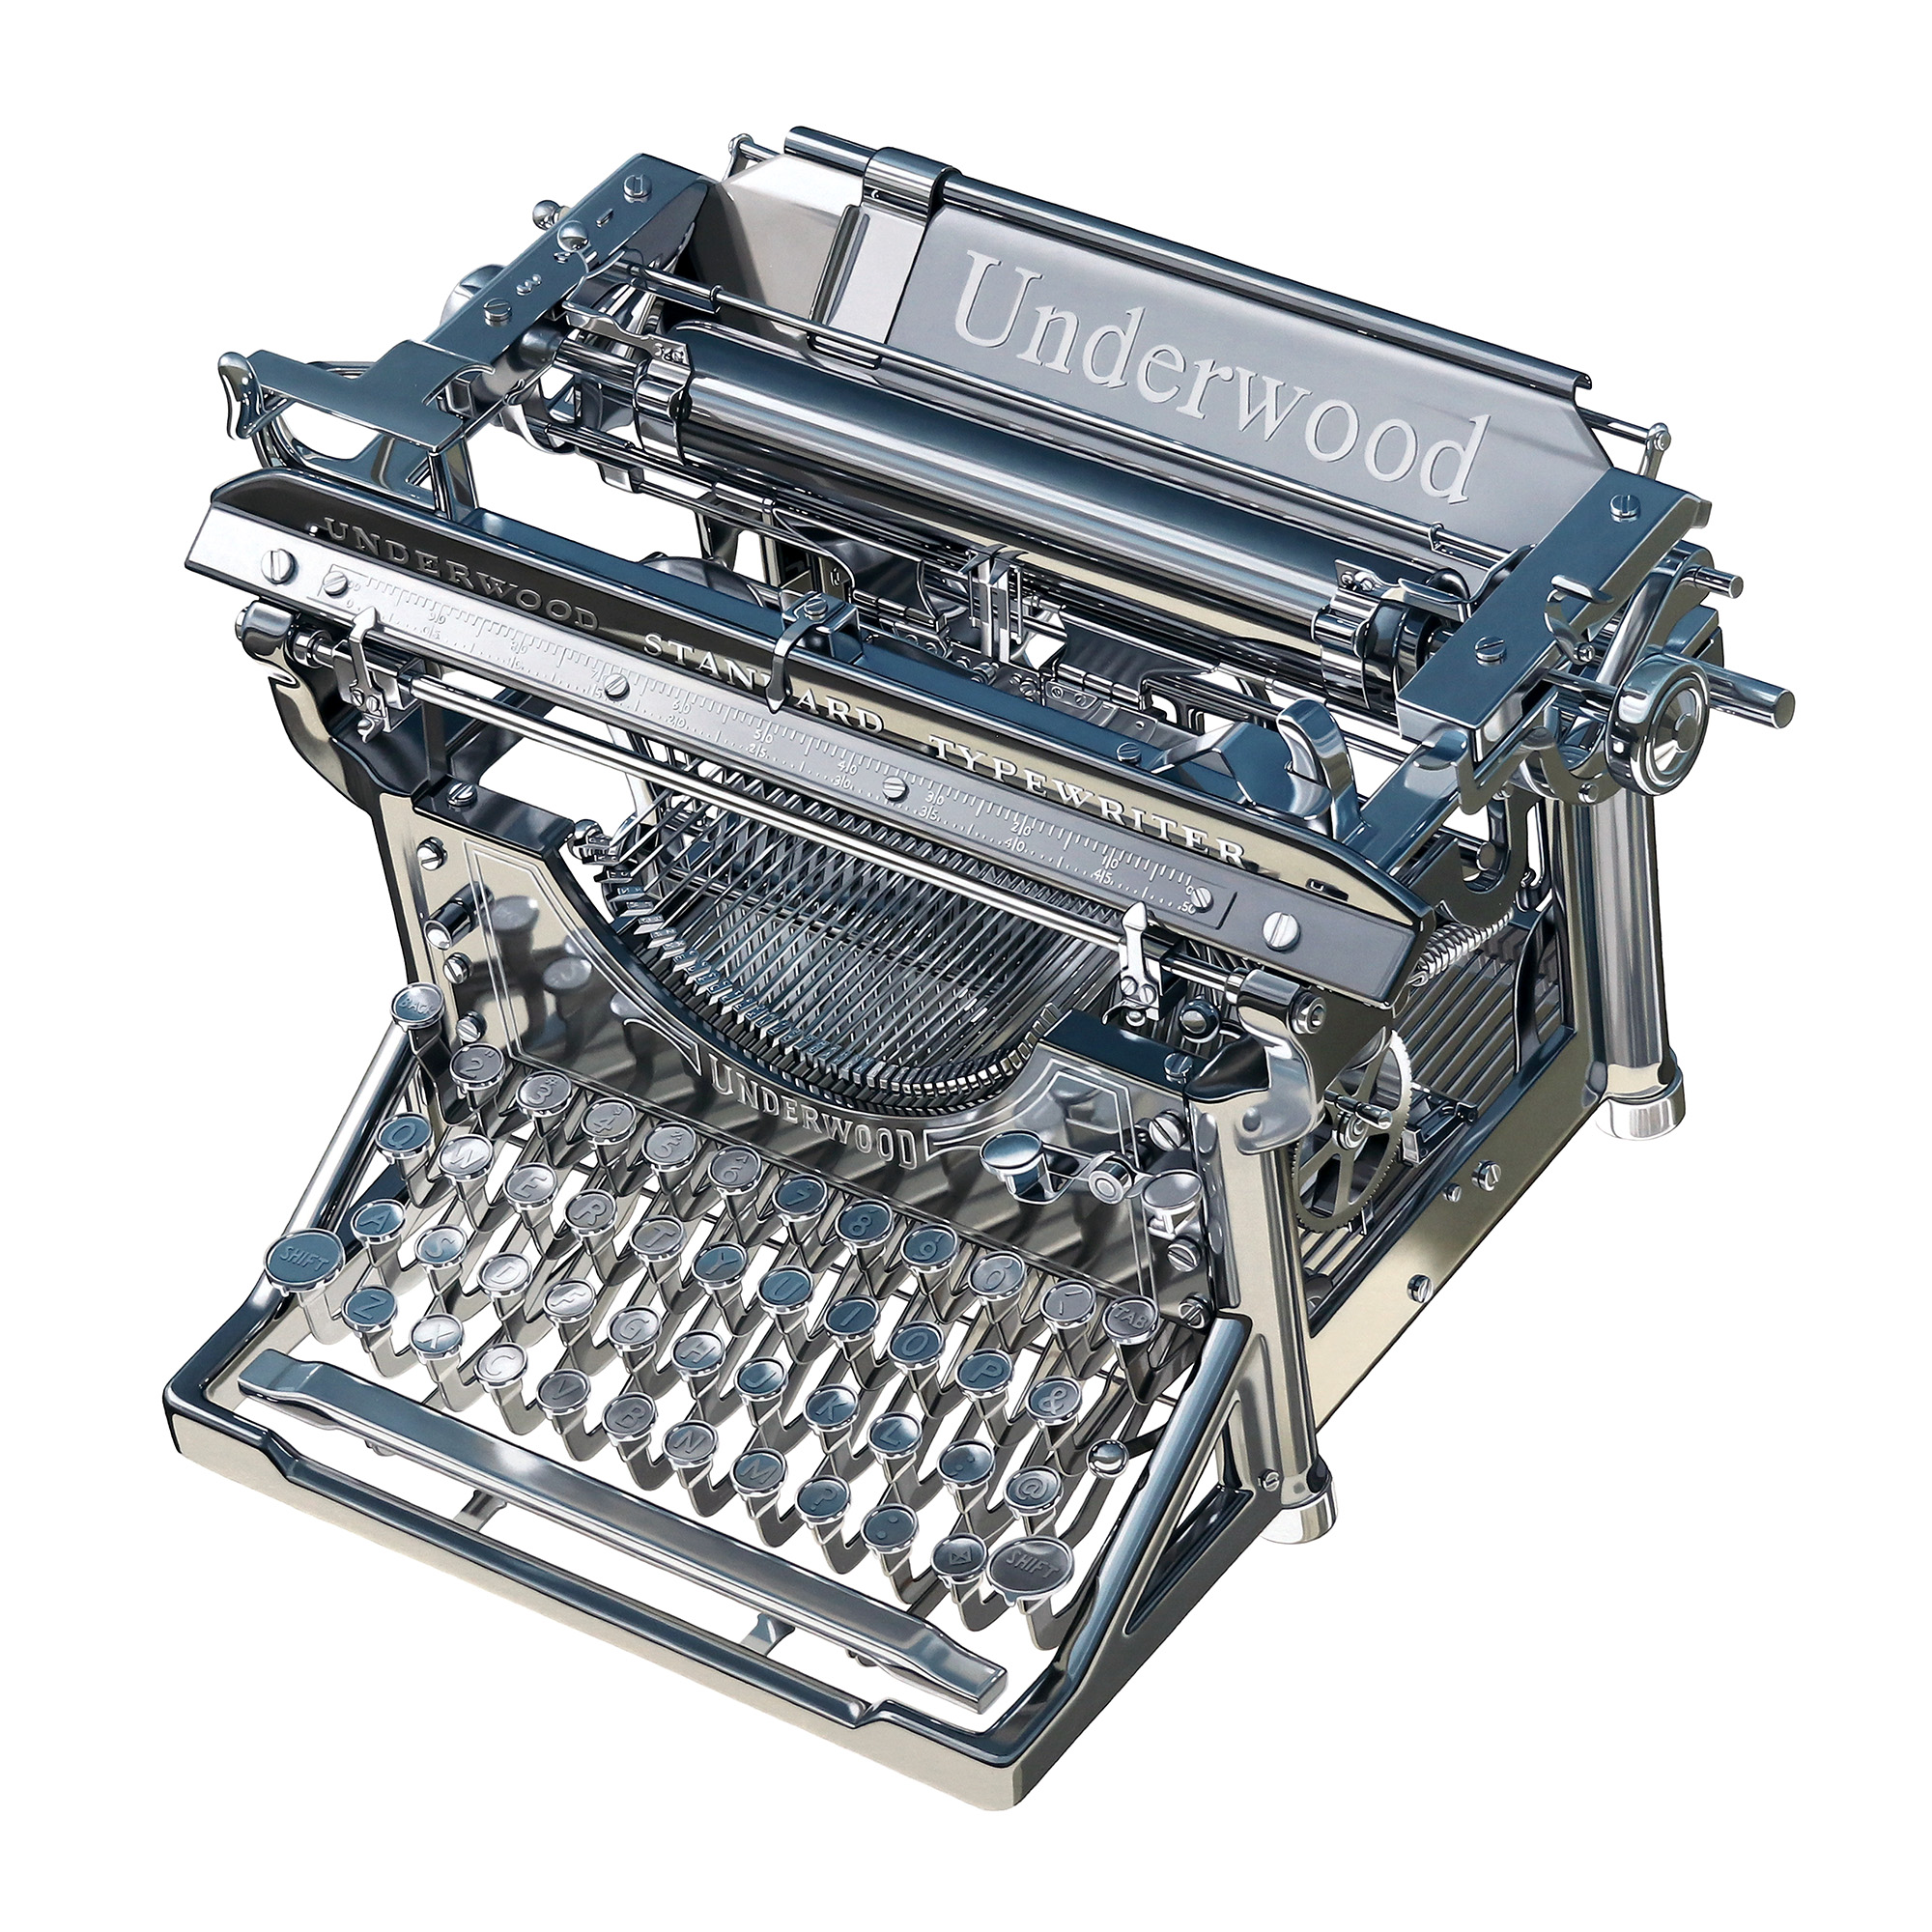 Steel Underwood Typewriter